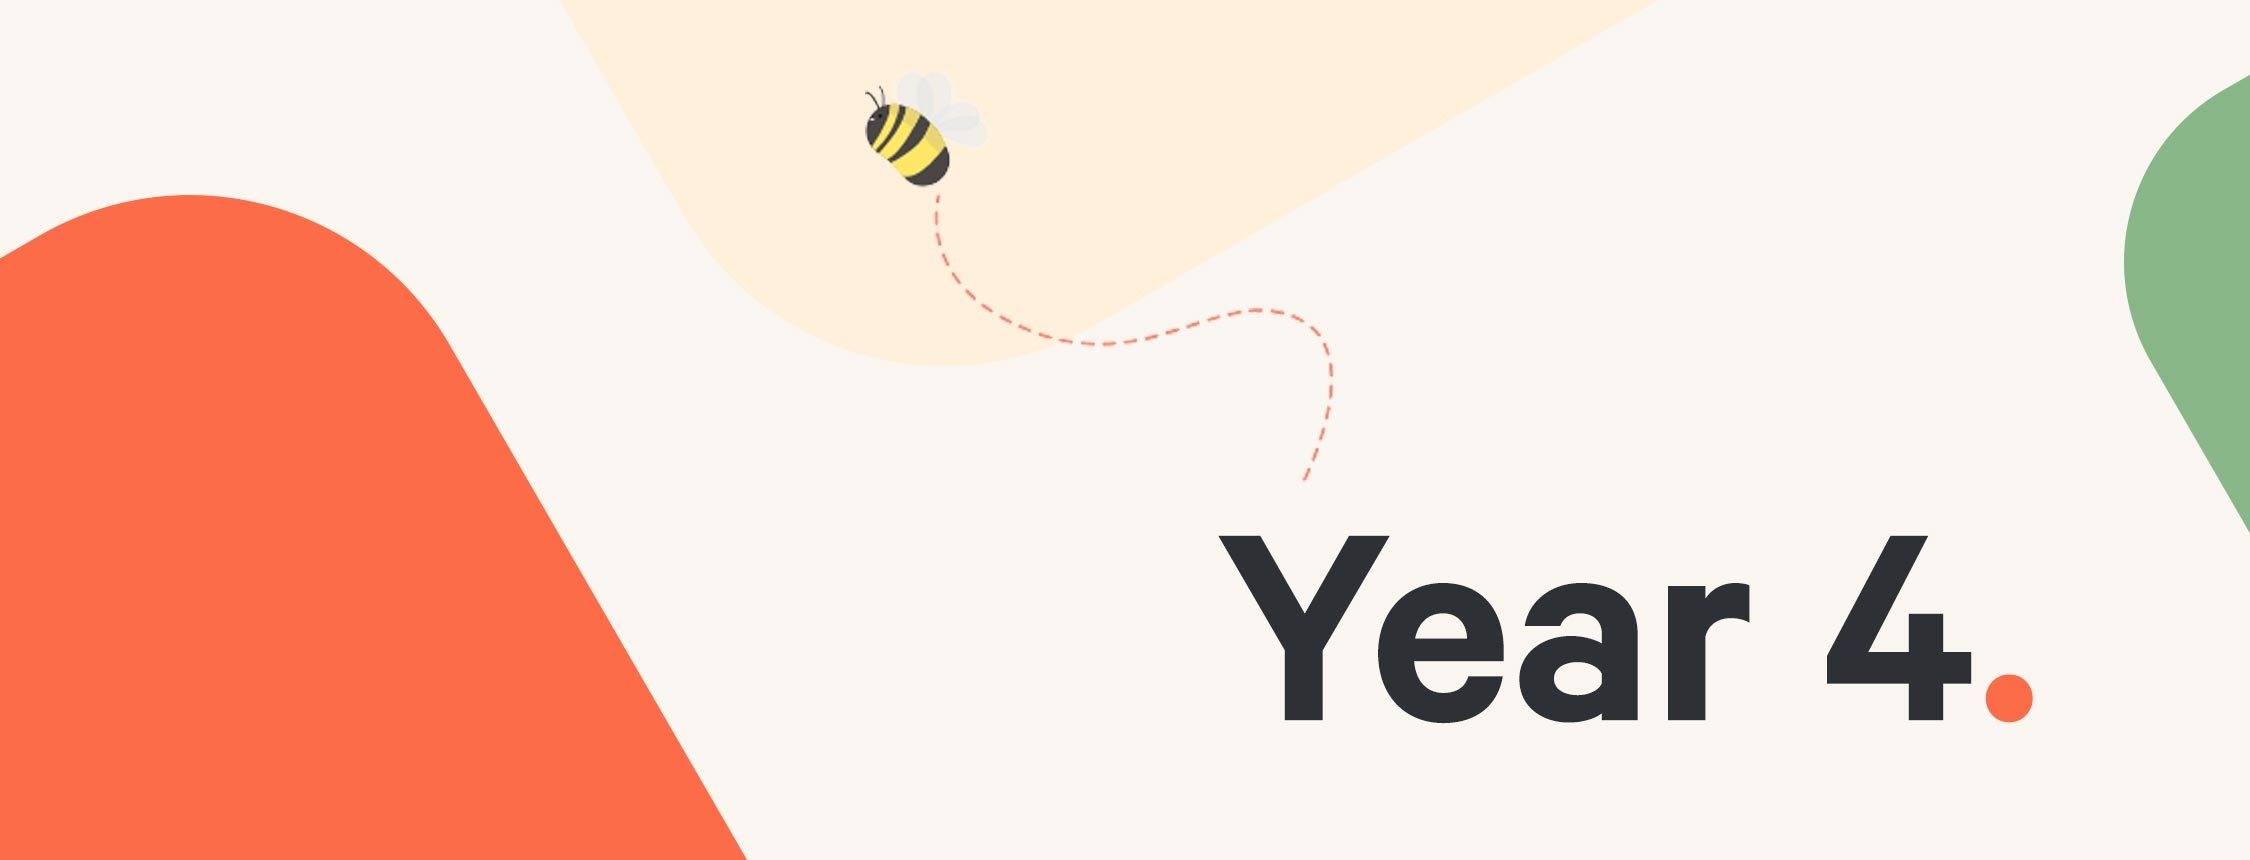 Year 4 - In-Depth HubSpot Review: 5 Years Of Real-World Use